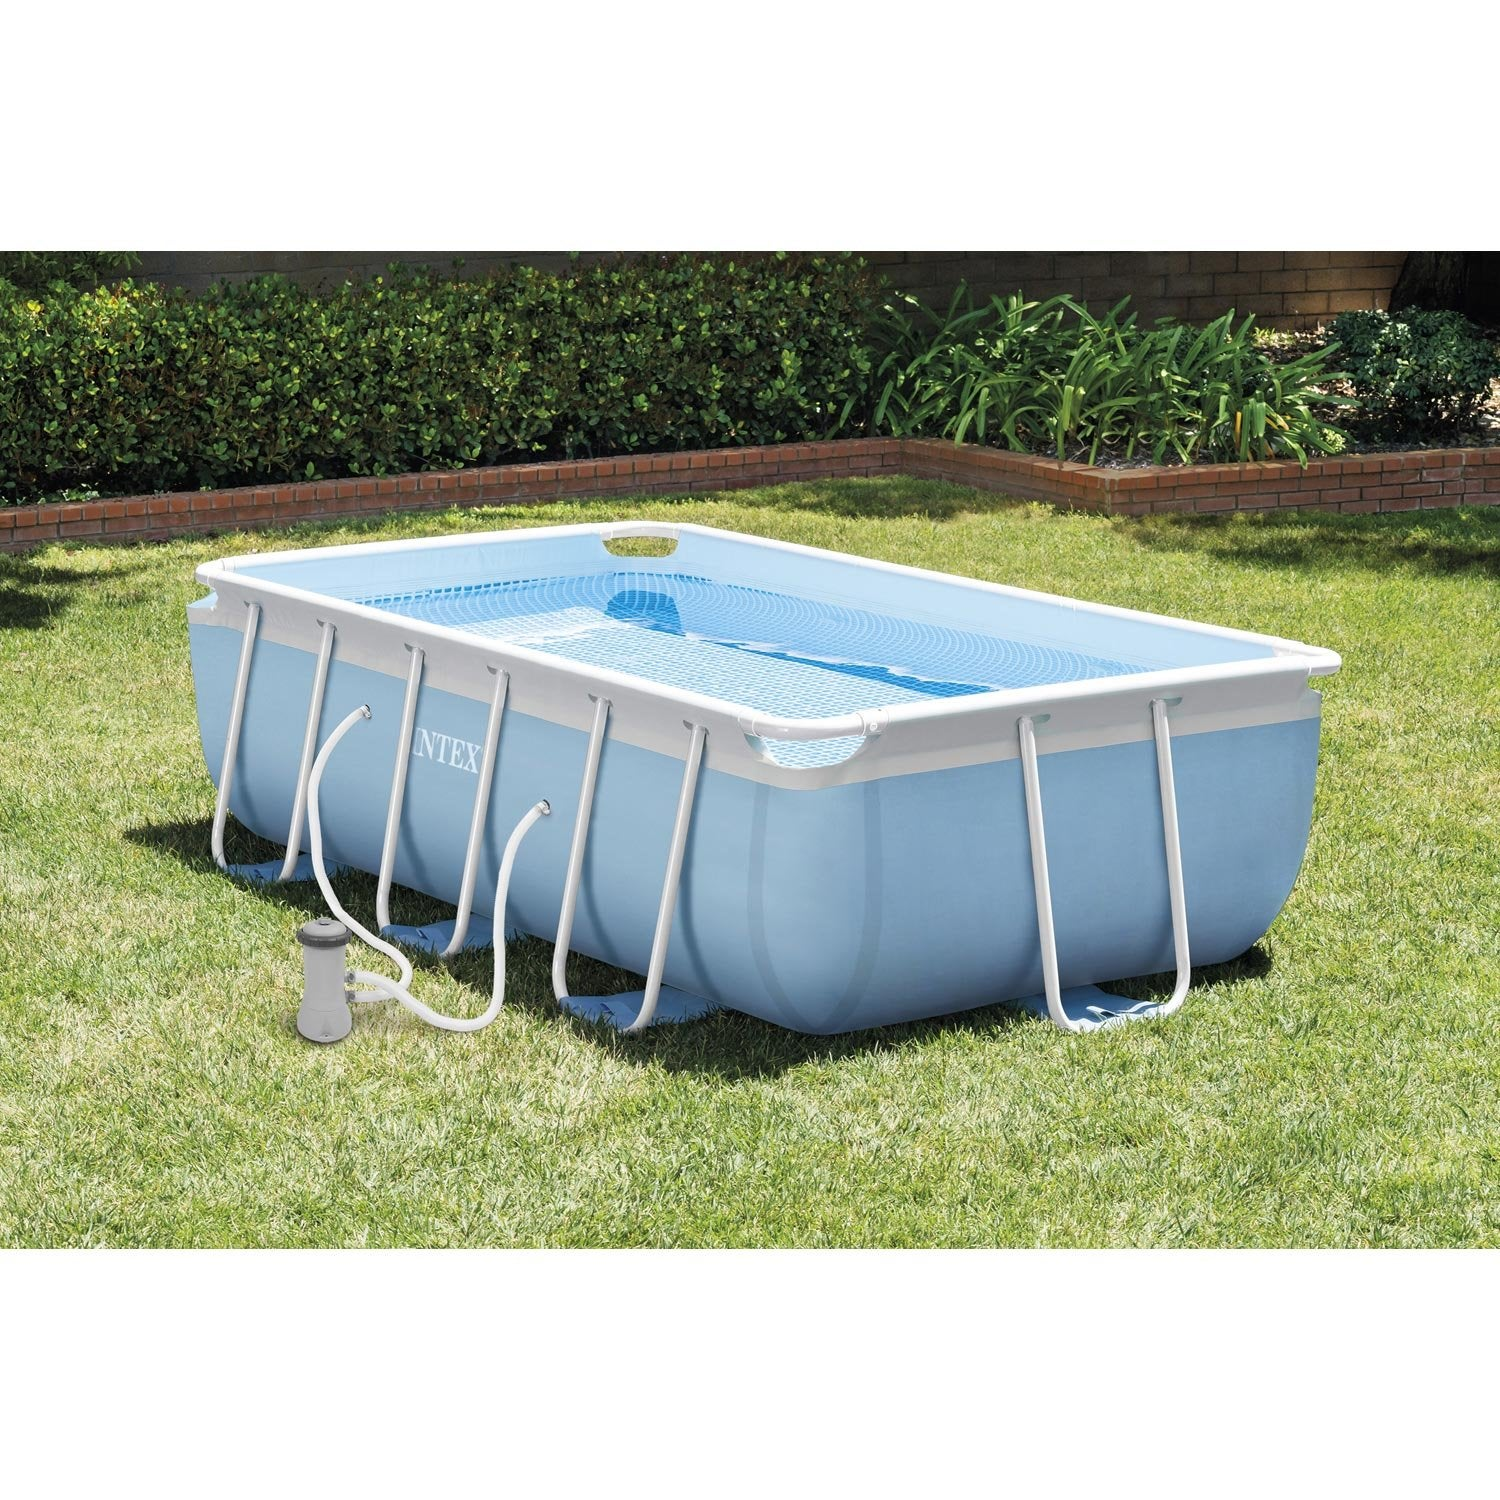 Piscine hors sol autoportante tubulaire intex l 3 4 x l 2 for Liner pour piscine tubulaire intex